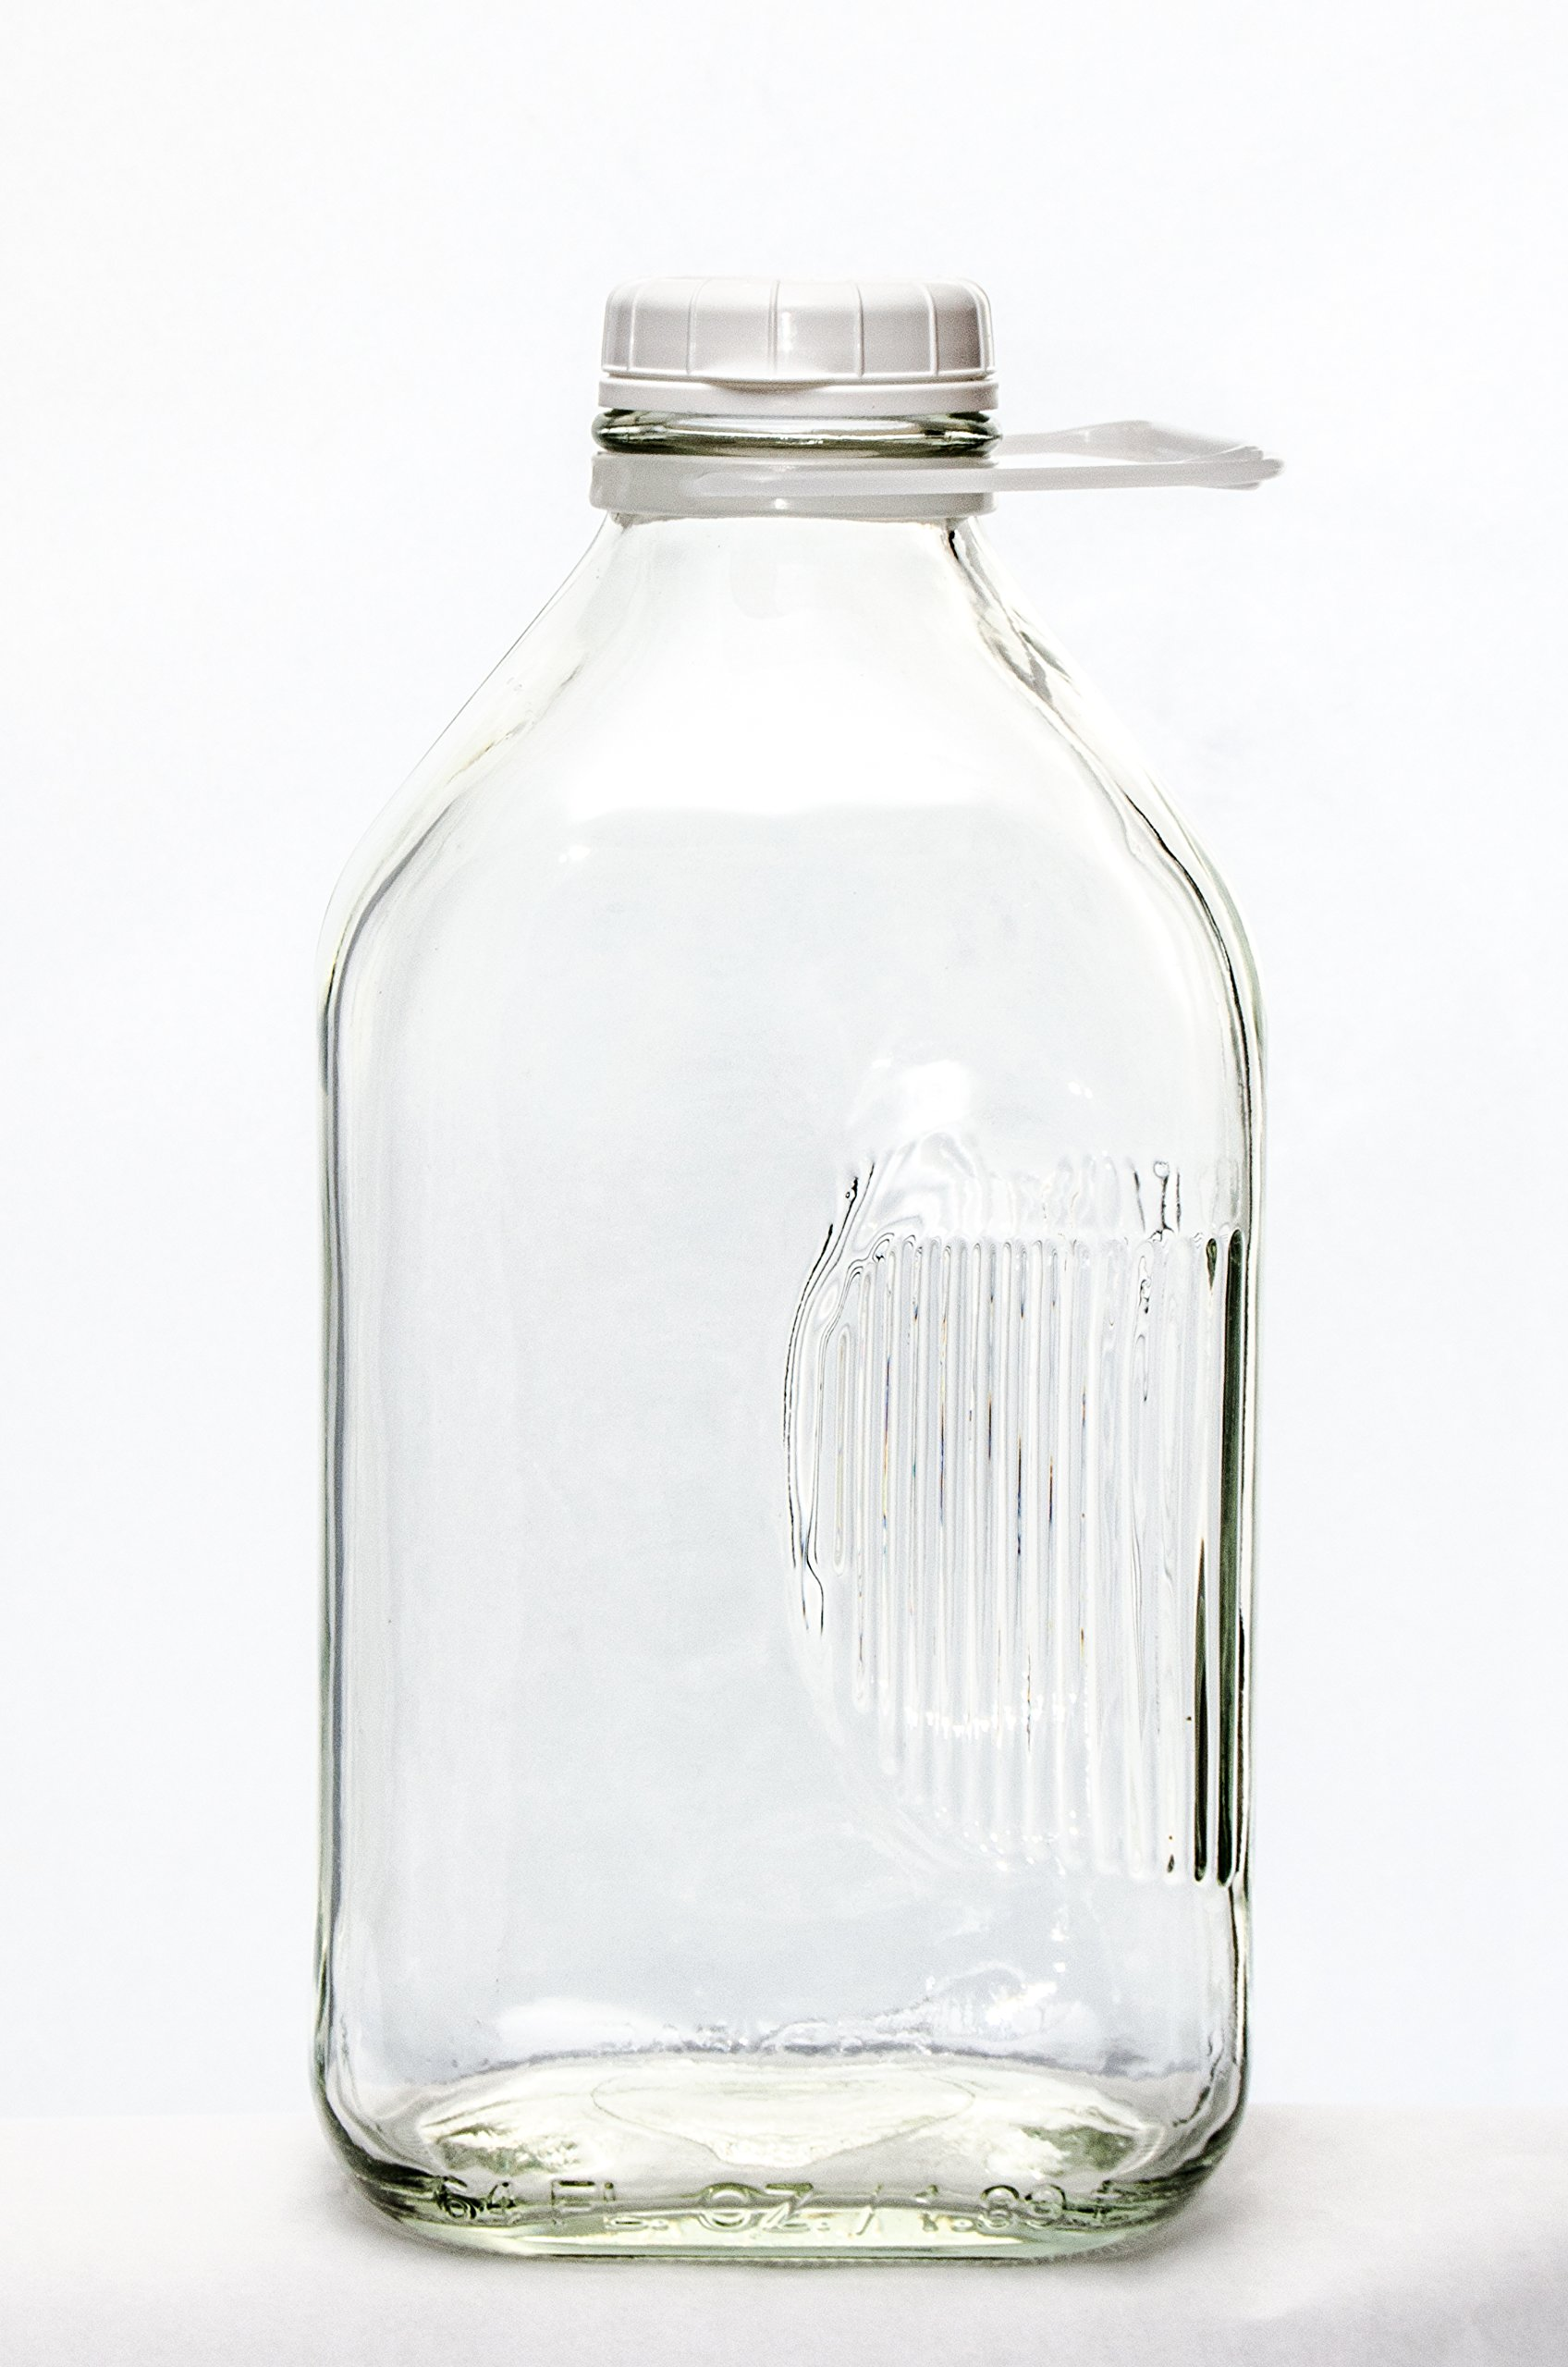 The Dairy Shoppe 2 Qt Heavy Glass Milk Bottle with Handle & Cap, 64 oz, 1/2 gallon